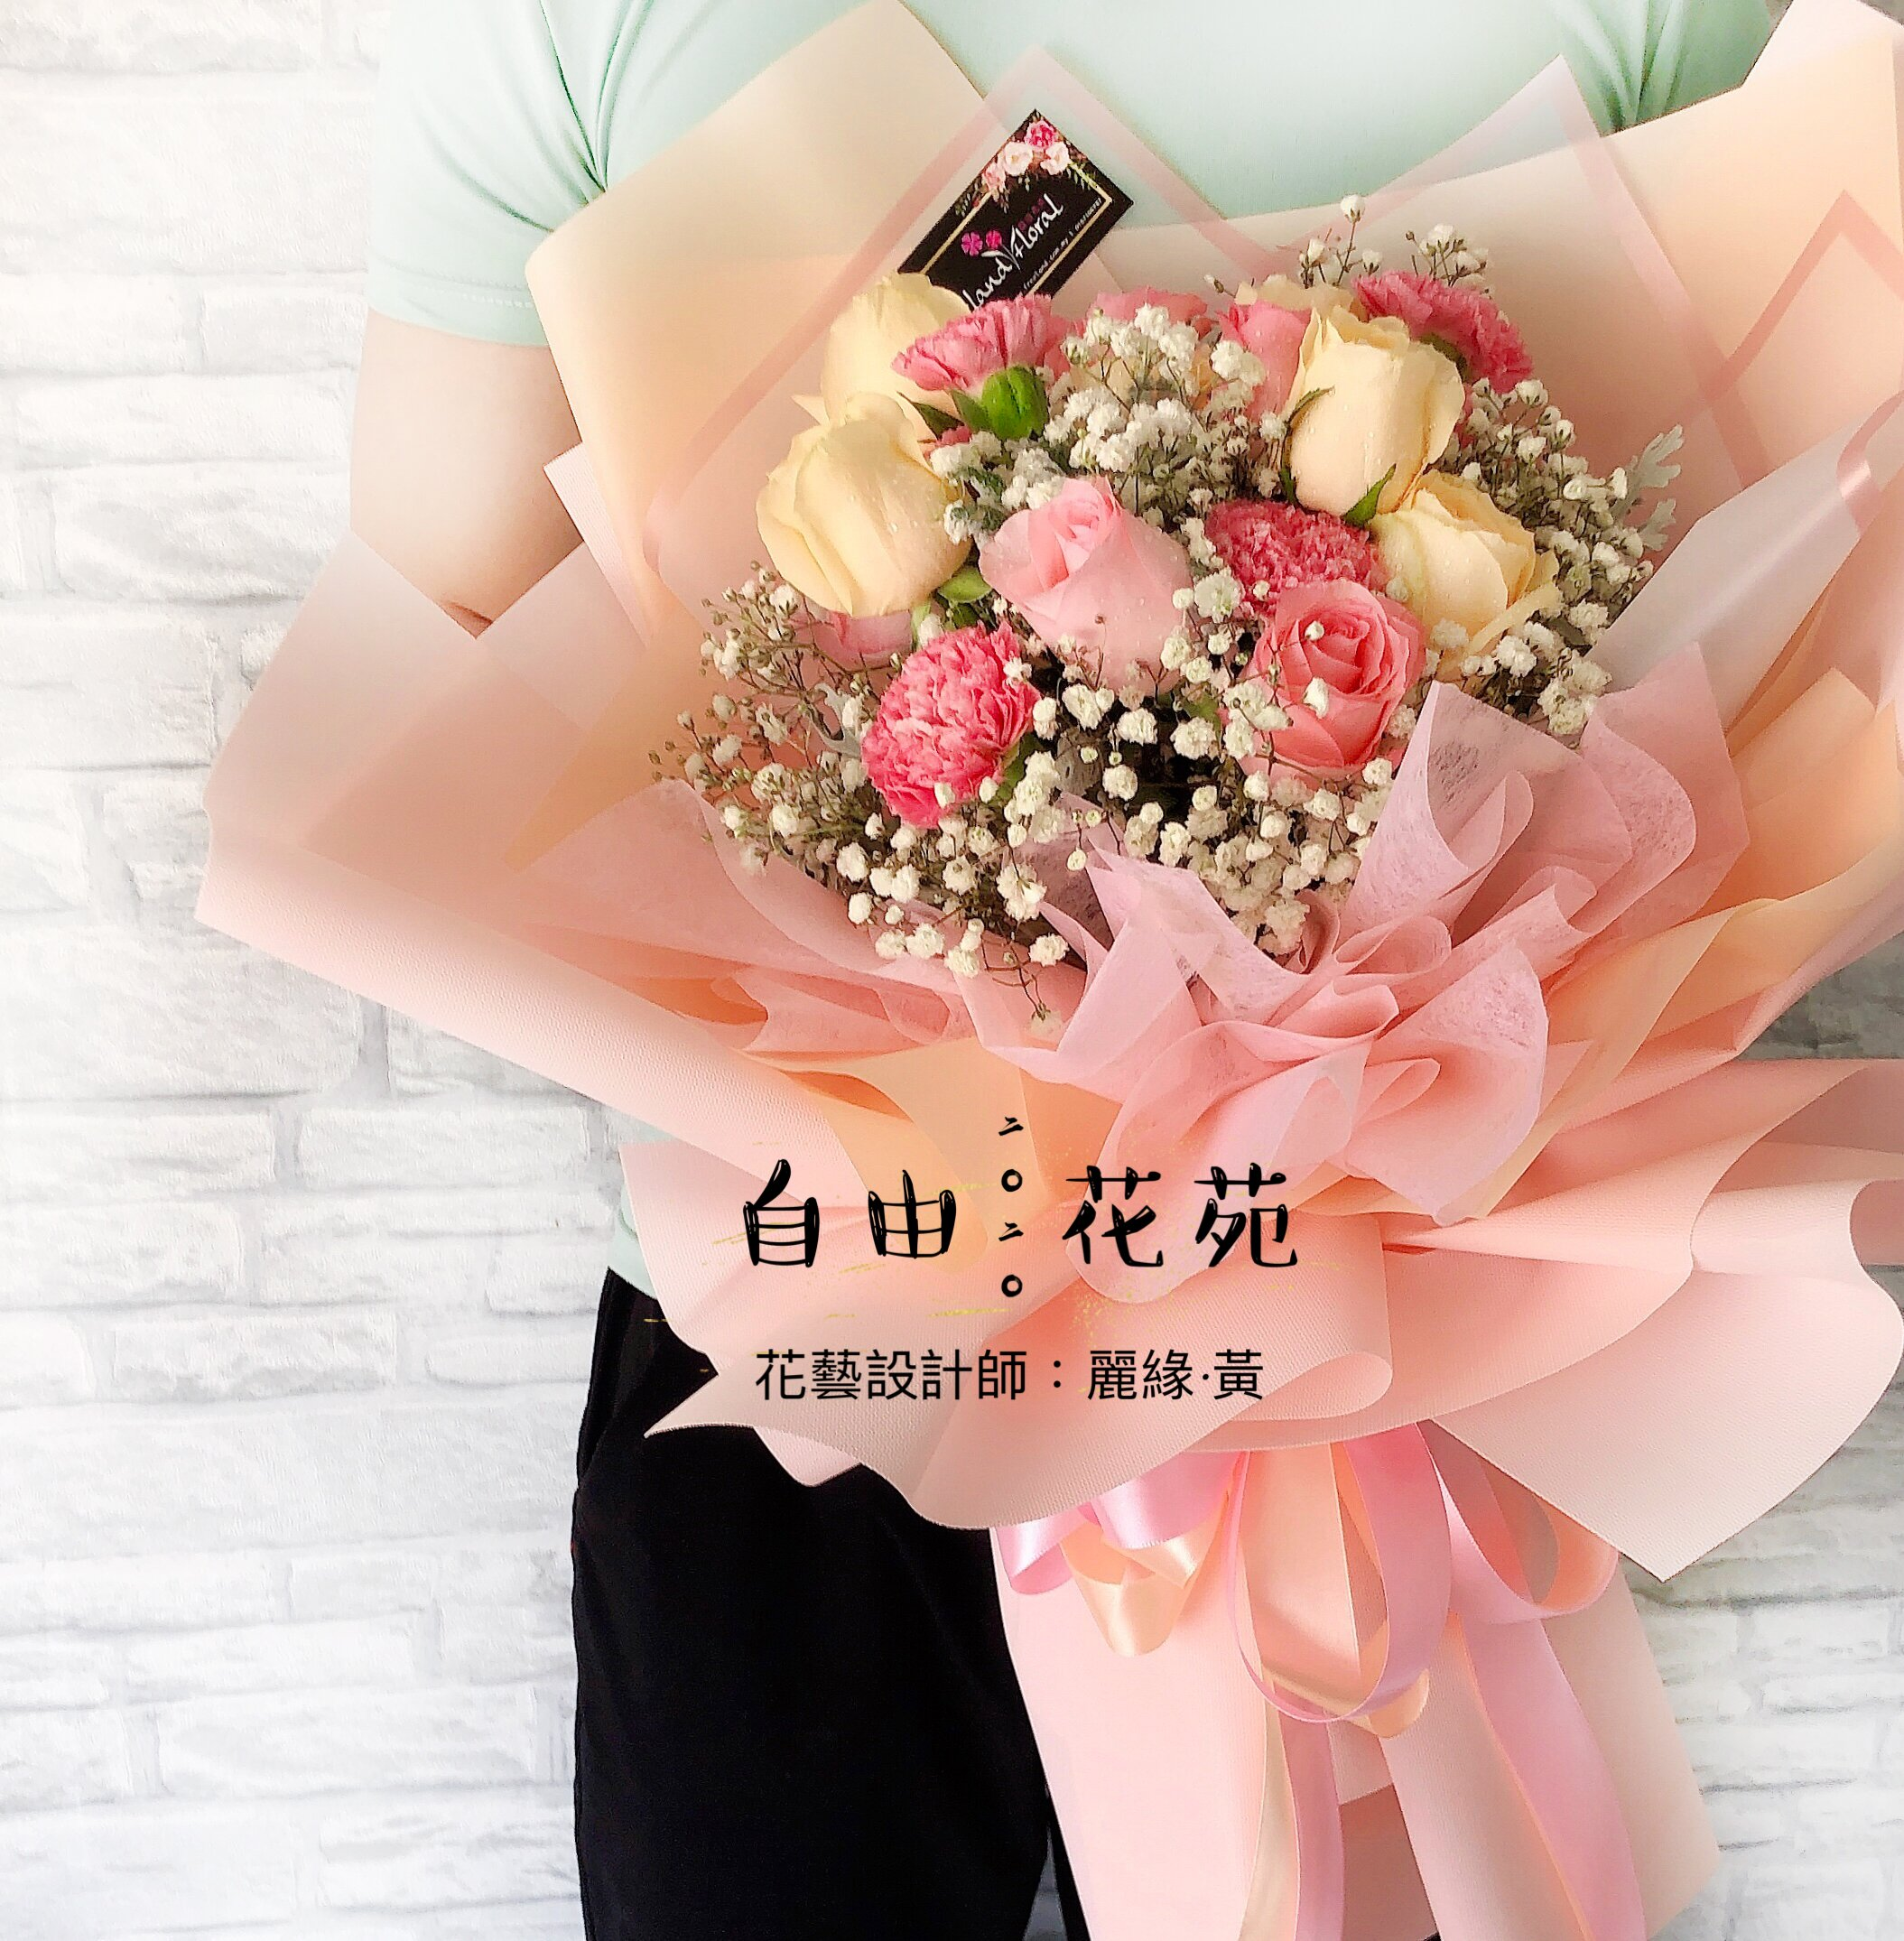 When I Falling In Love - Freeland Floral 自由花苑